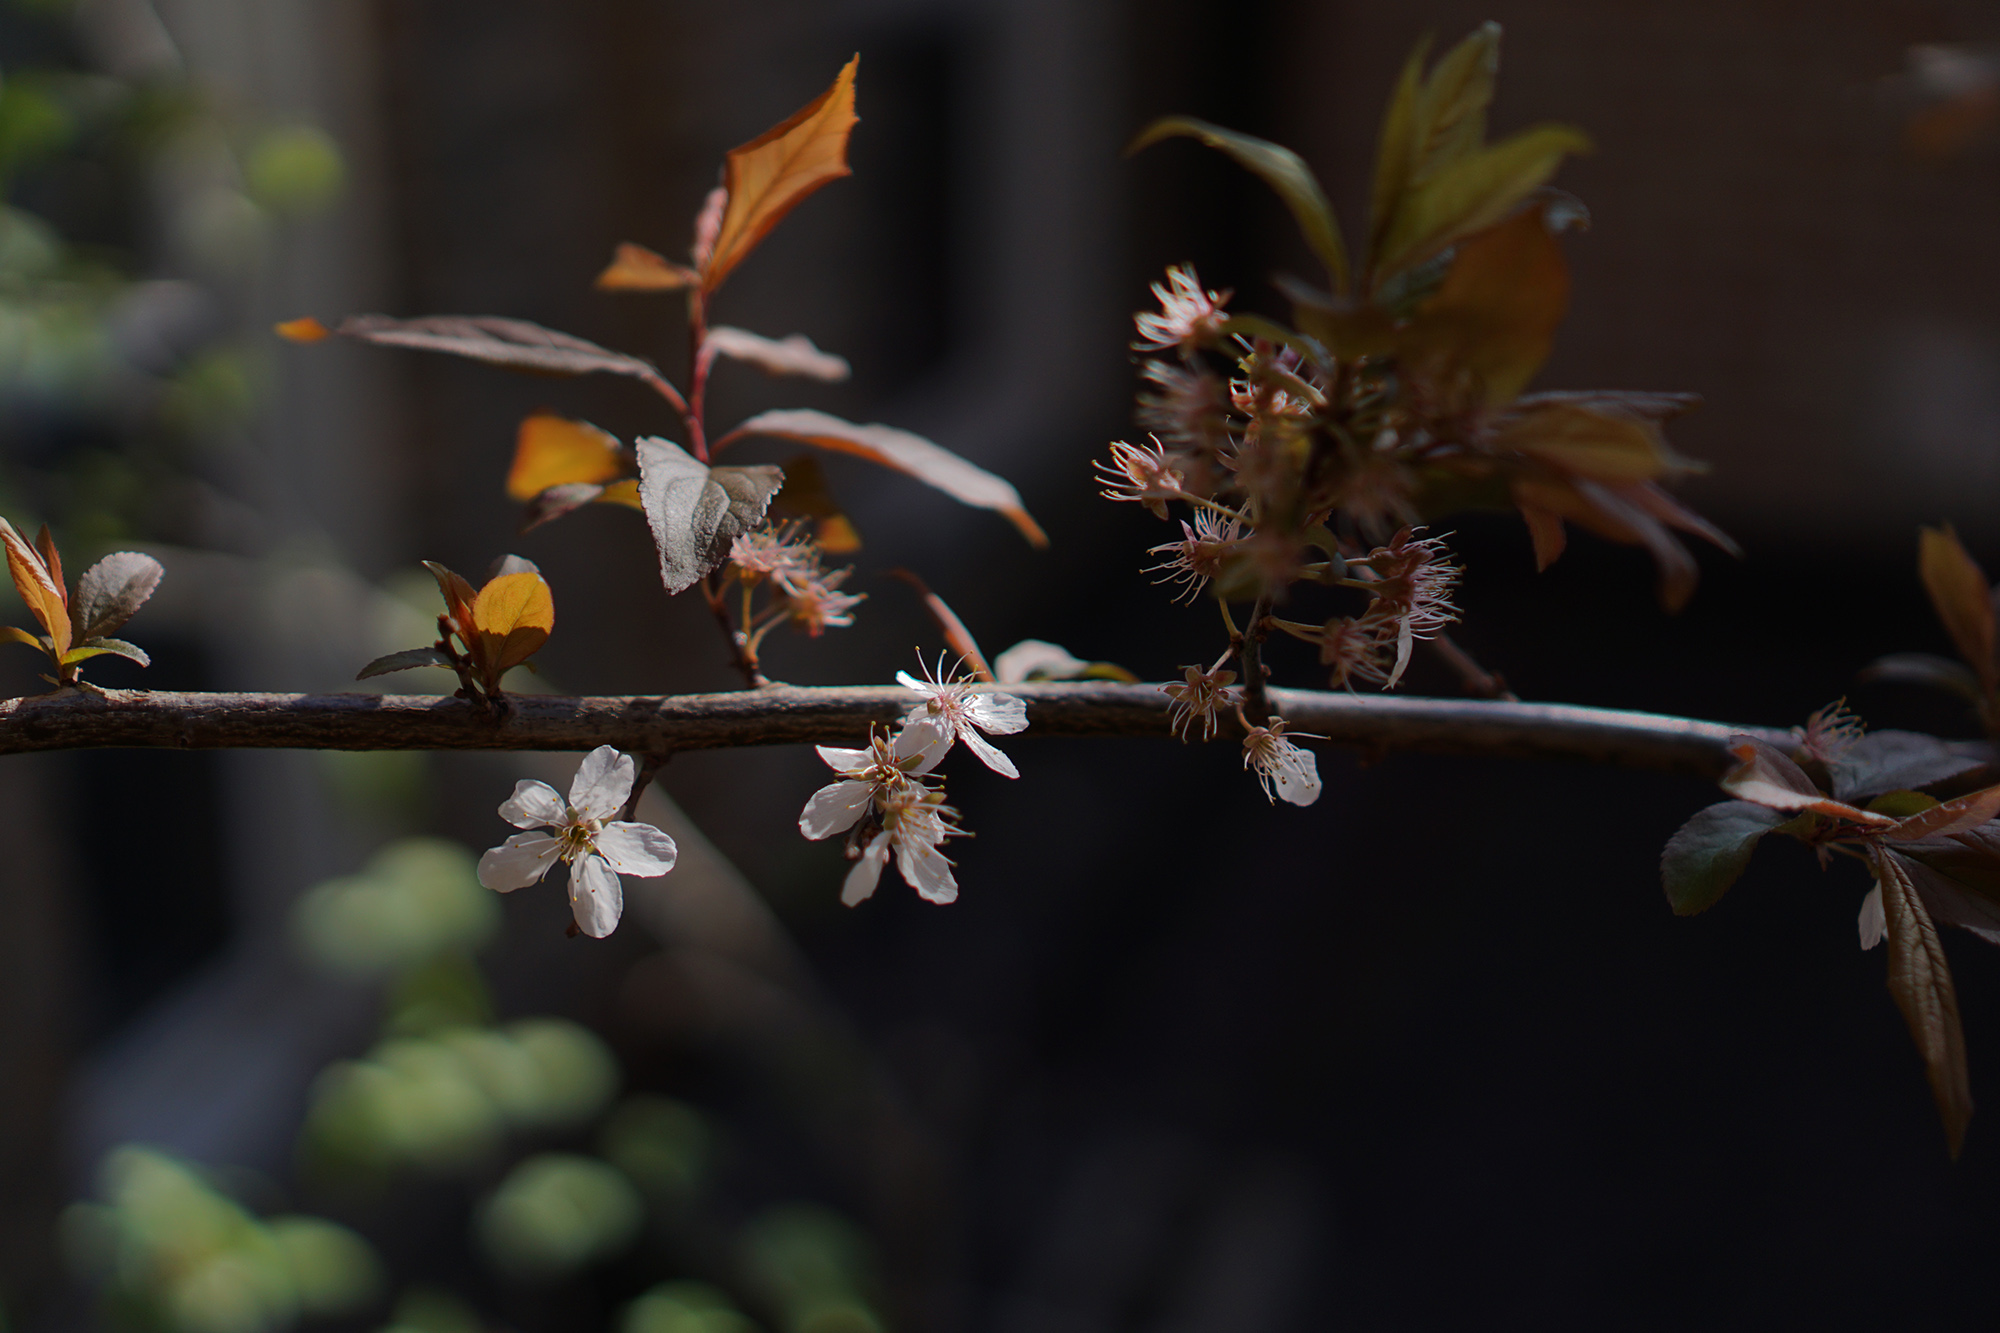 Purpleleaf Plum tree (Prunus cerasifera) flowers and leaves, Chicago IL / Darker than Green